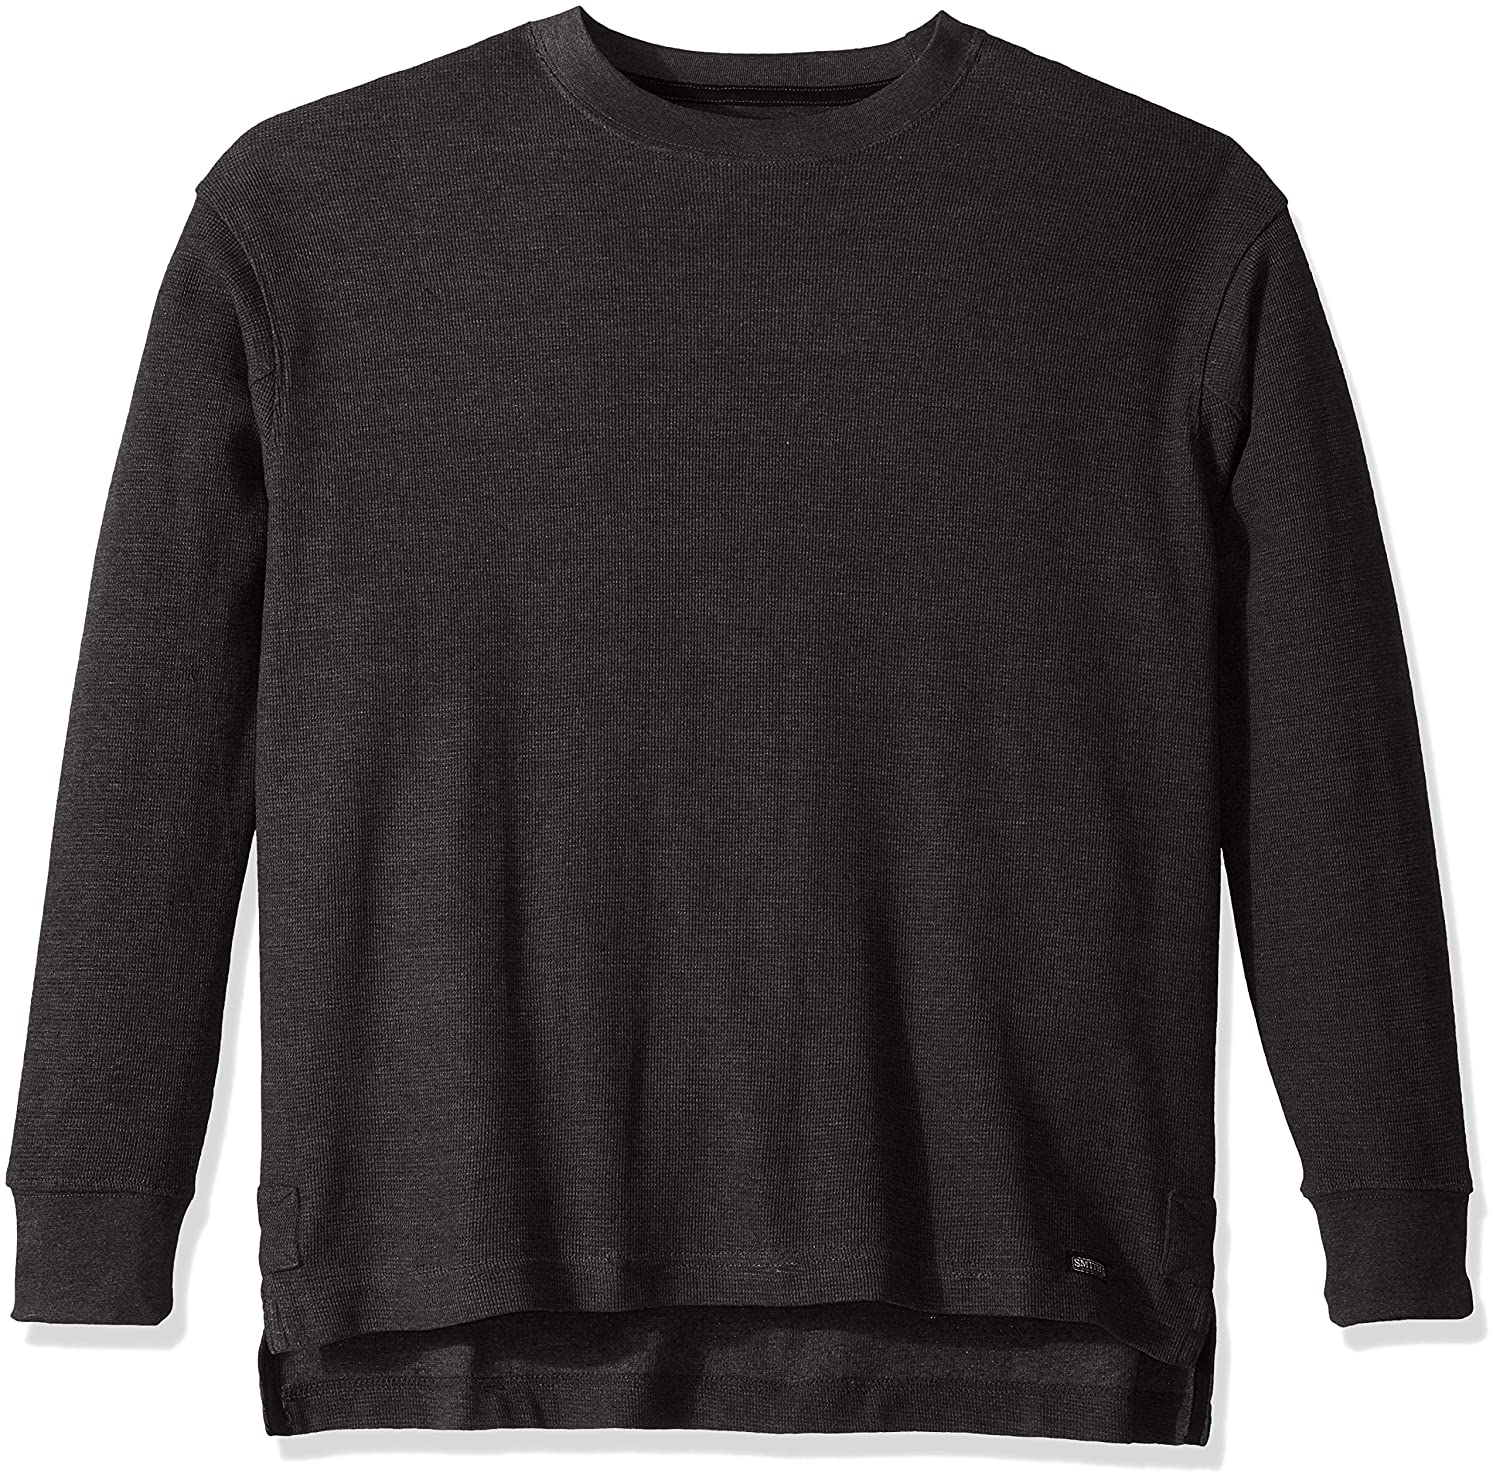 Smiths Workwear Mens Long-Tail Thermal Knit Crew Pullover with Gusset